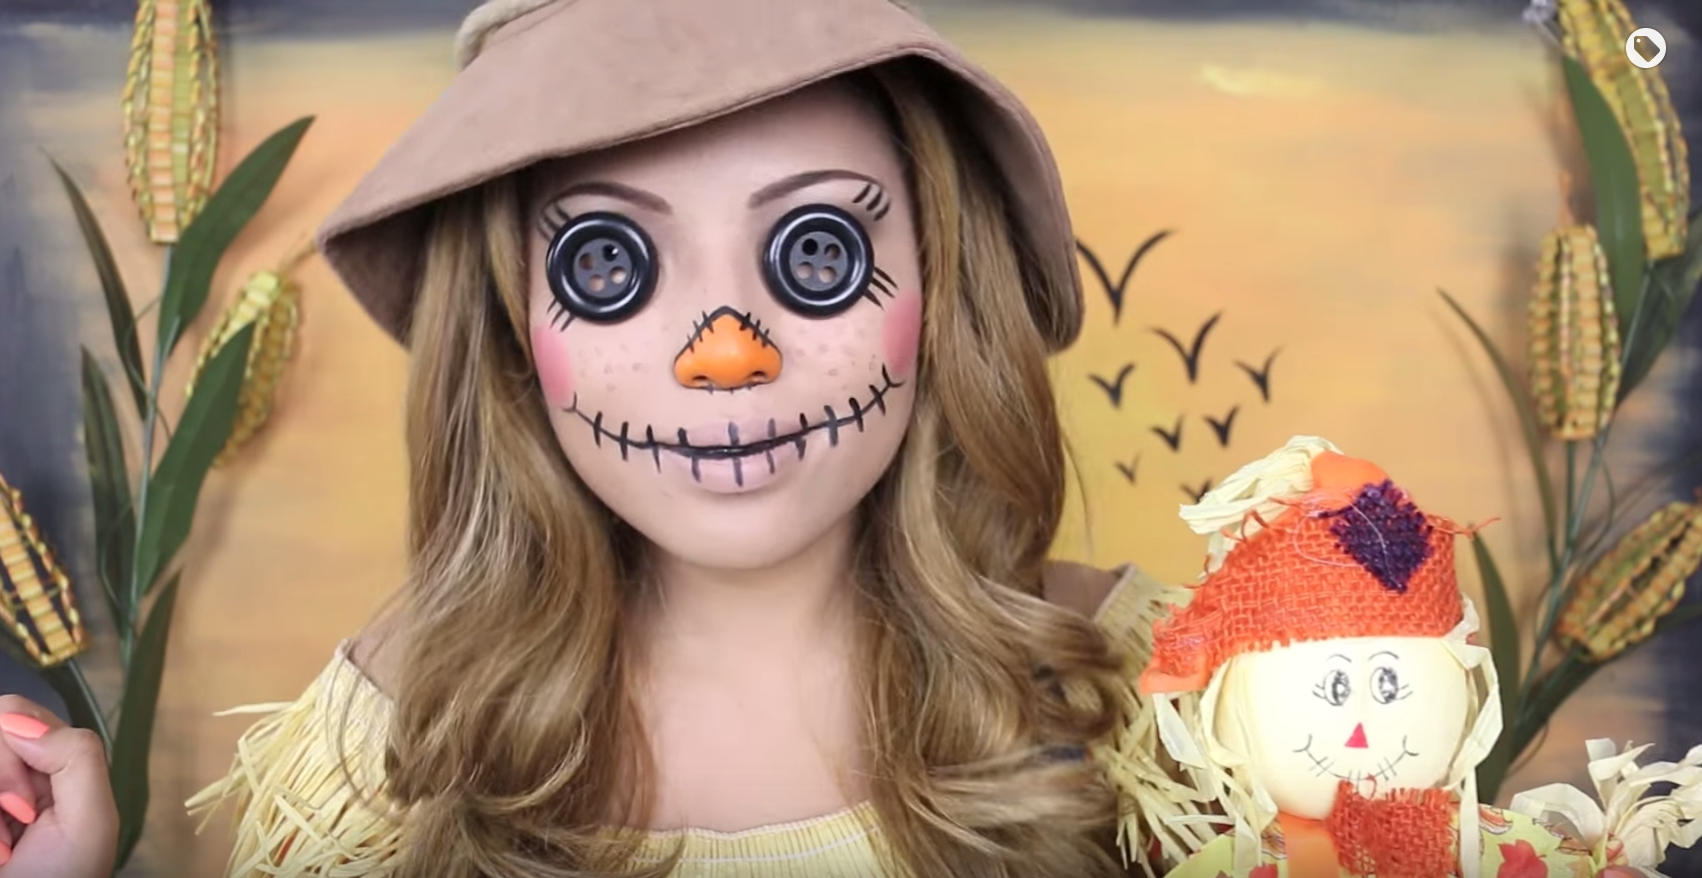 Best Scarecrow Halloween Makeup Ideas - harrop.us - harrop.us